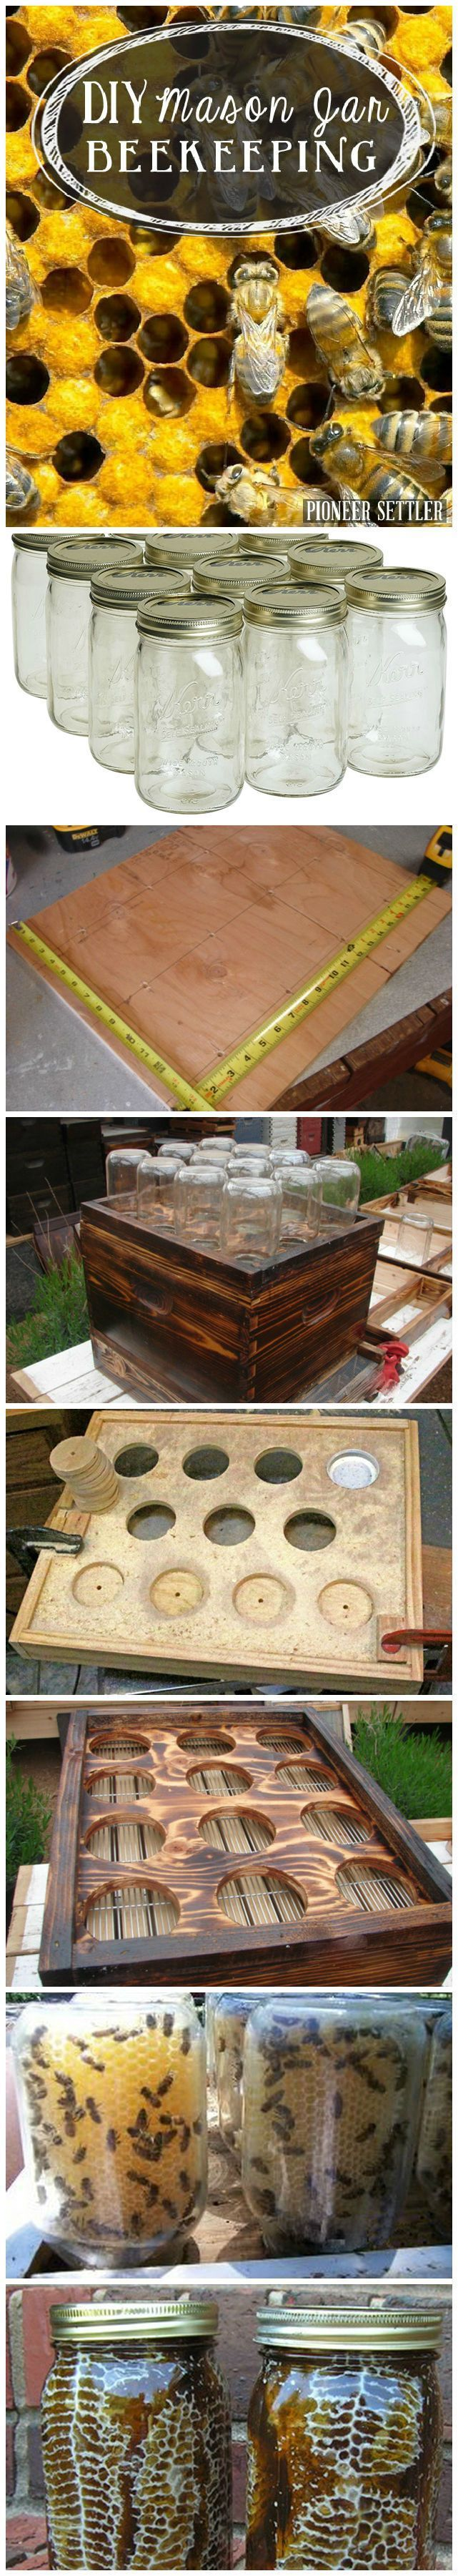 DIY Mason Jar Beekeeping | Bees and Beekeeping Tips and Recipes | Pioneer Settler | DIY Hive Building and Beekeeping 101 at pioneersettler.com